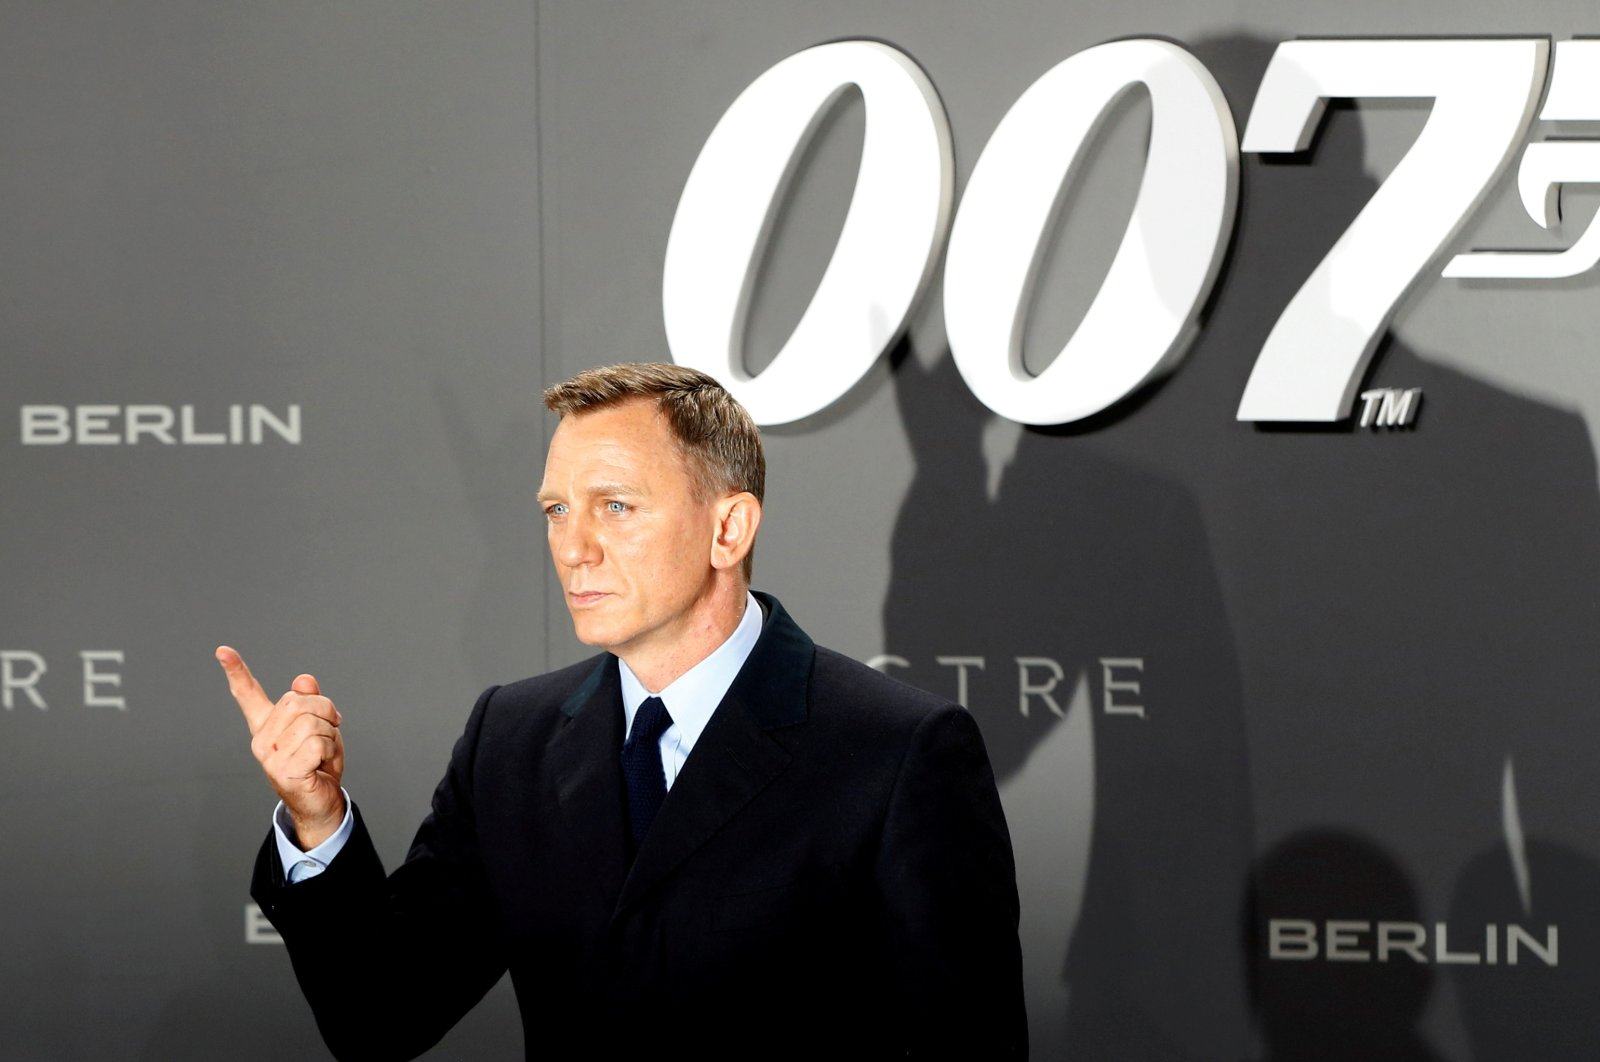 """Actor Daniel Craig poses for photographers on the red carpet at the German premiere of the James Bond 007 film """"Spectre"""" in Berlin, Germany, Oct. 28, 2015. (REUTERS File Photo)"""